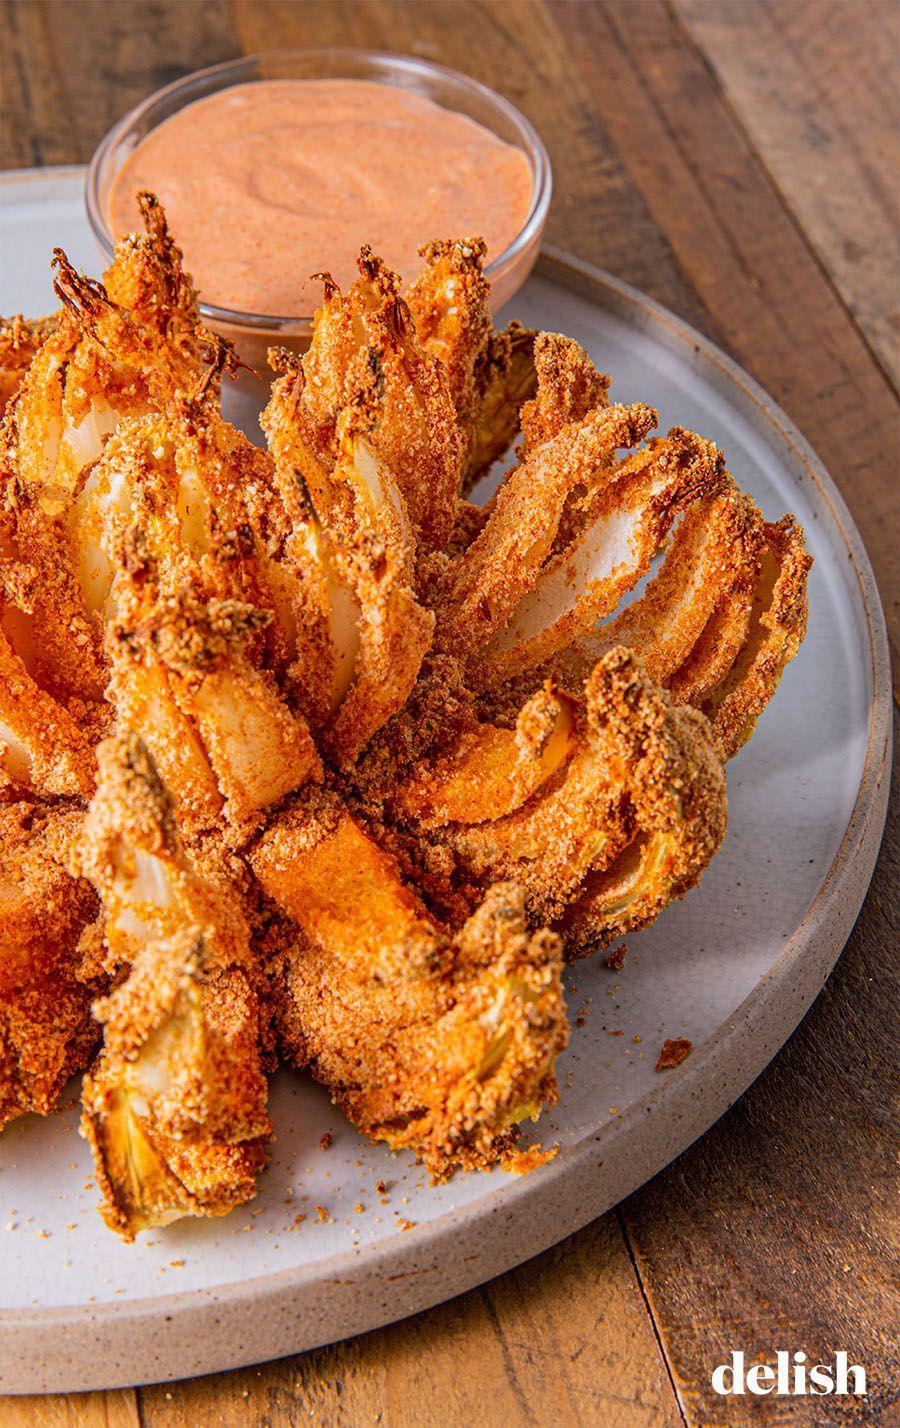 "<p>The Outback secret sauce is essential.</p><p>Get the recipe from <a href=""https://www.delish.com/cooking/recipe-ideas/a28650227/air-fryer-blooming-onion/"" rel=""nofollow noopener"" target=""_blank"" data-ylk=""slk:Delish"" class=""link rapid-noclick-resp"">Delish</a>.</p>"